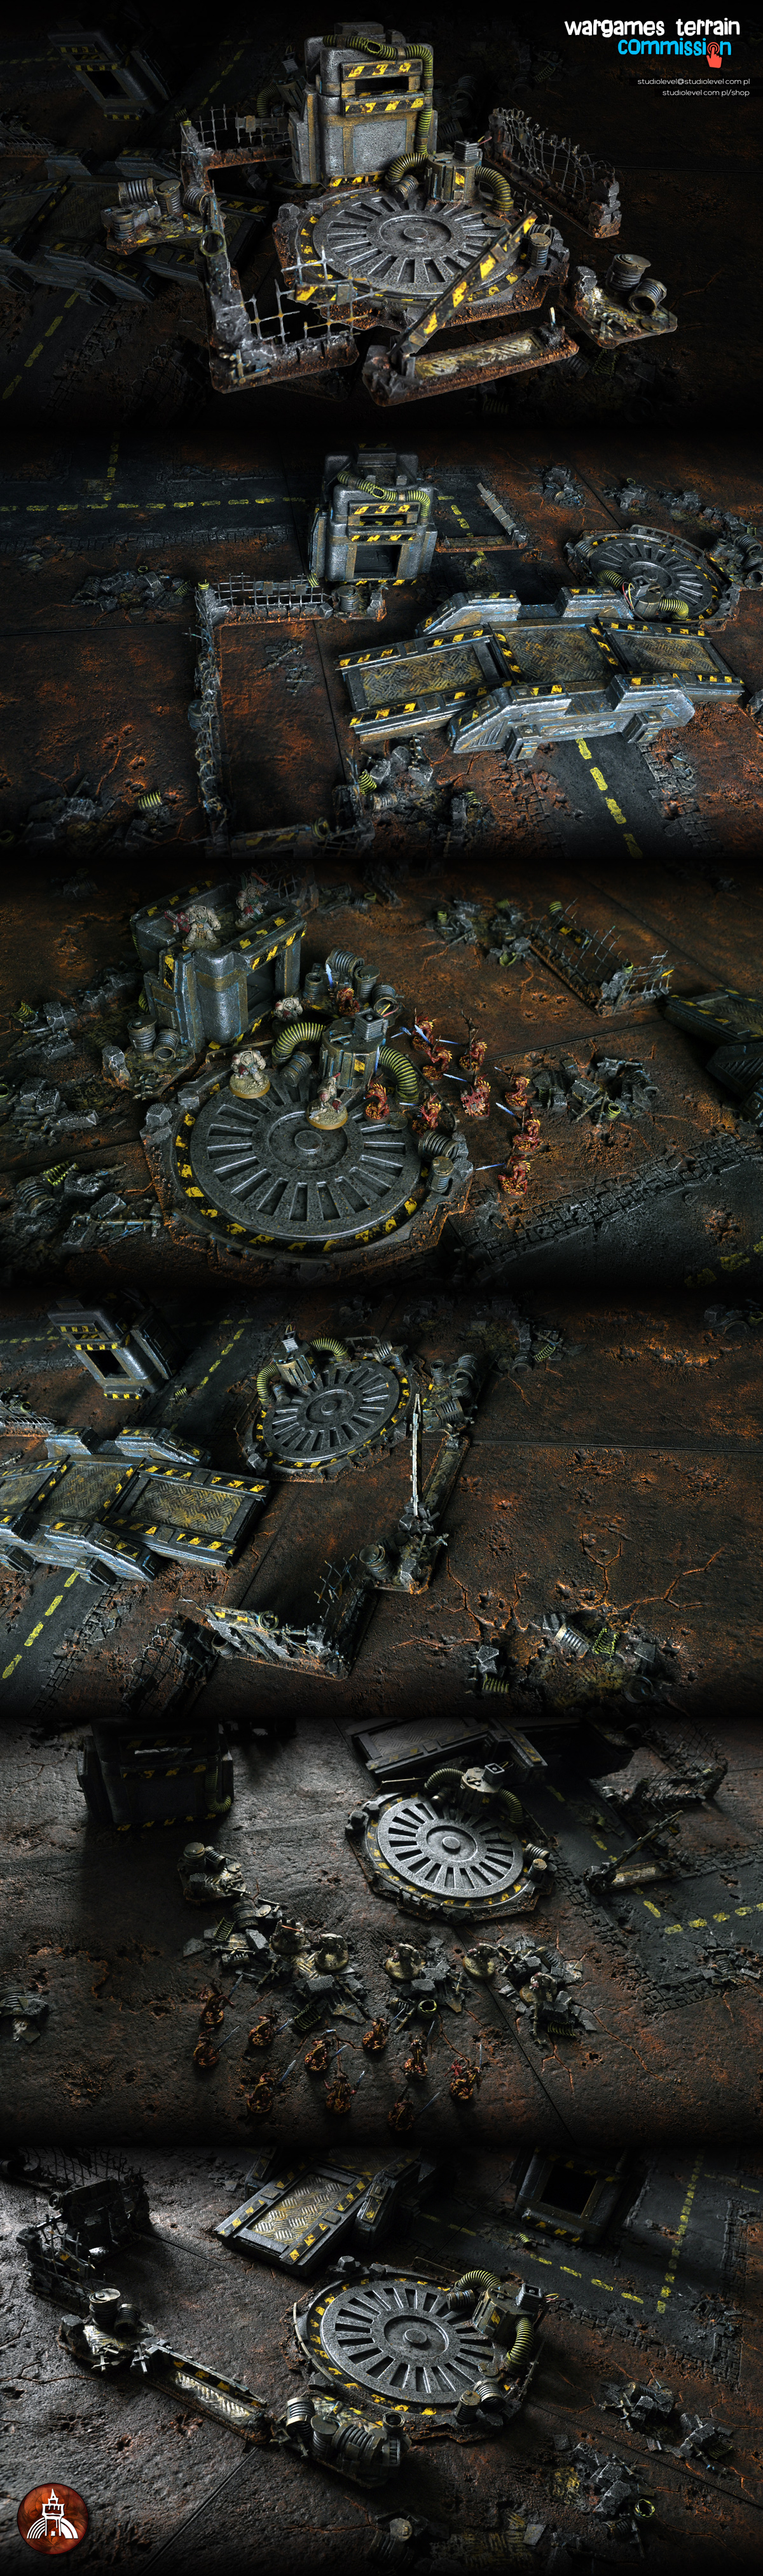 Bloodletters of Khorne vs. Dark Angels Terminators, Landing Pad Battle SET RUSTY WASTE by StudioLevel [2015]    more stuff here:    http://studiolevel.com.pl/shop/44-rusty-waste